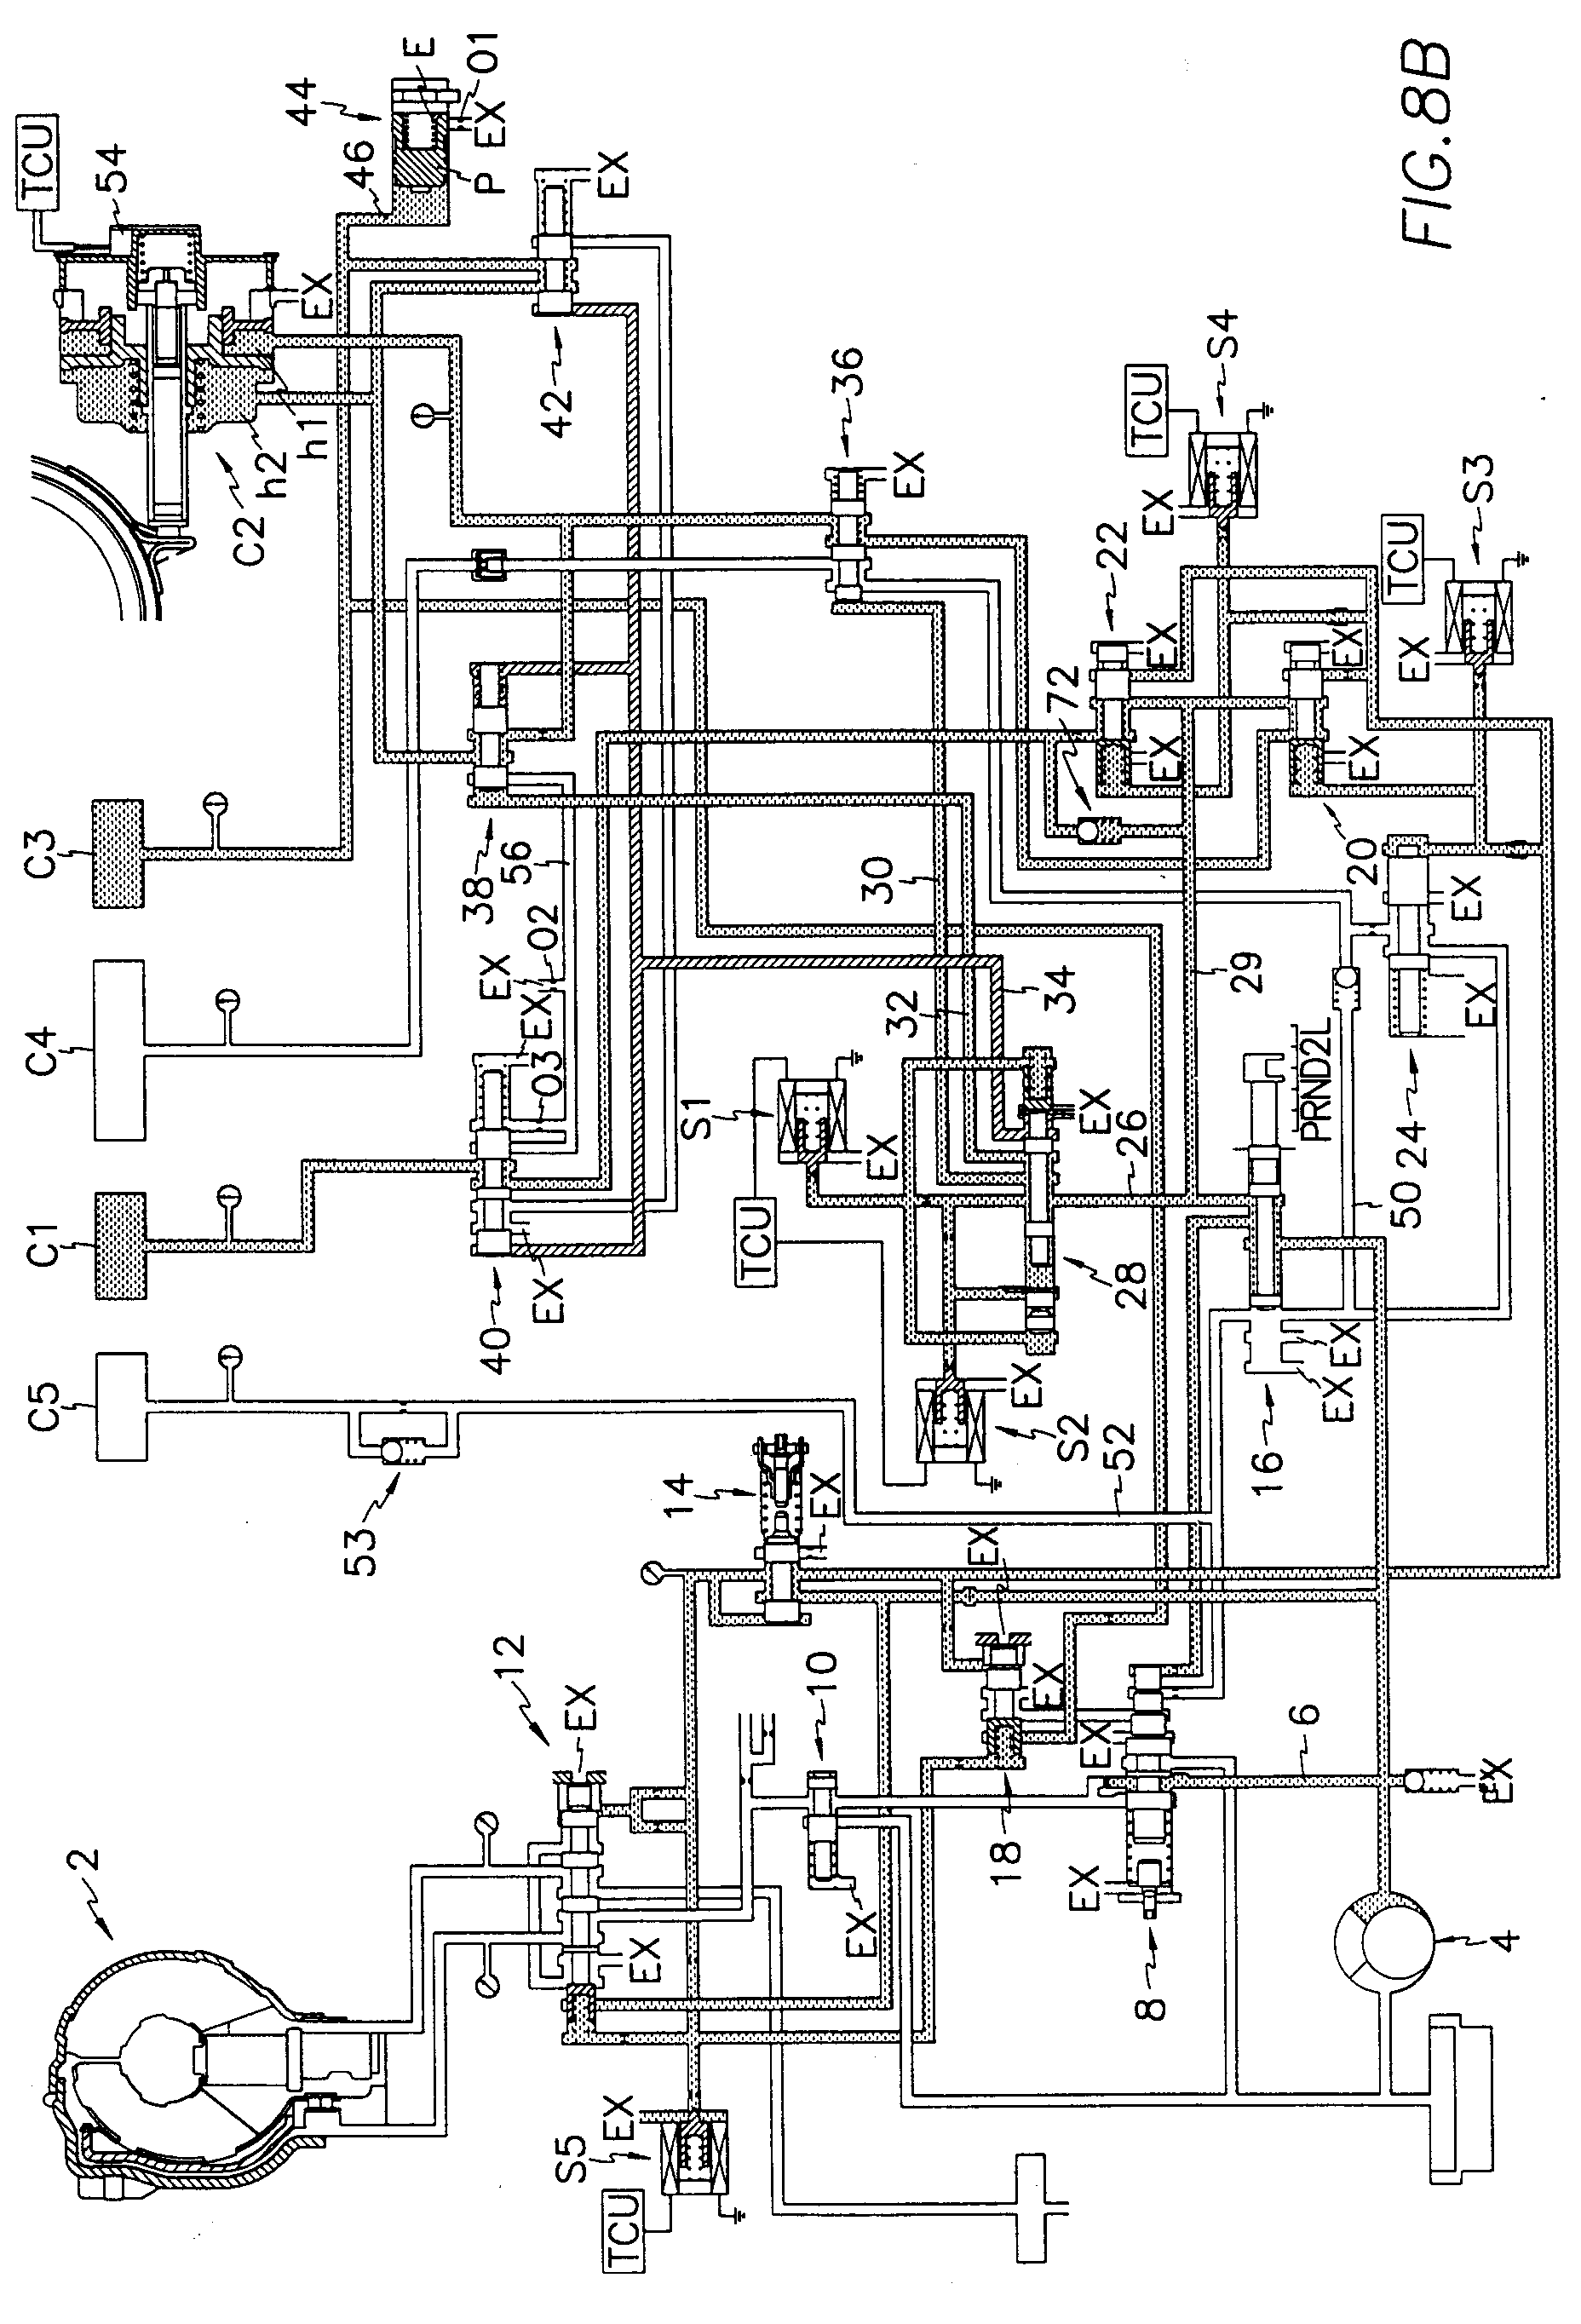 Ih Scout 2 Wiring Diagram - List of Wiring Diagrams on